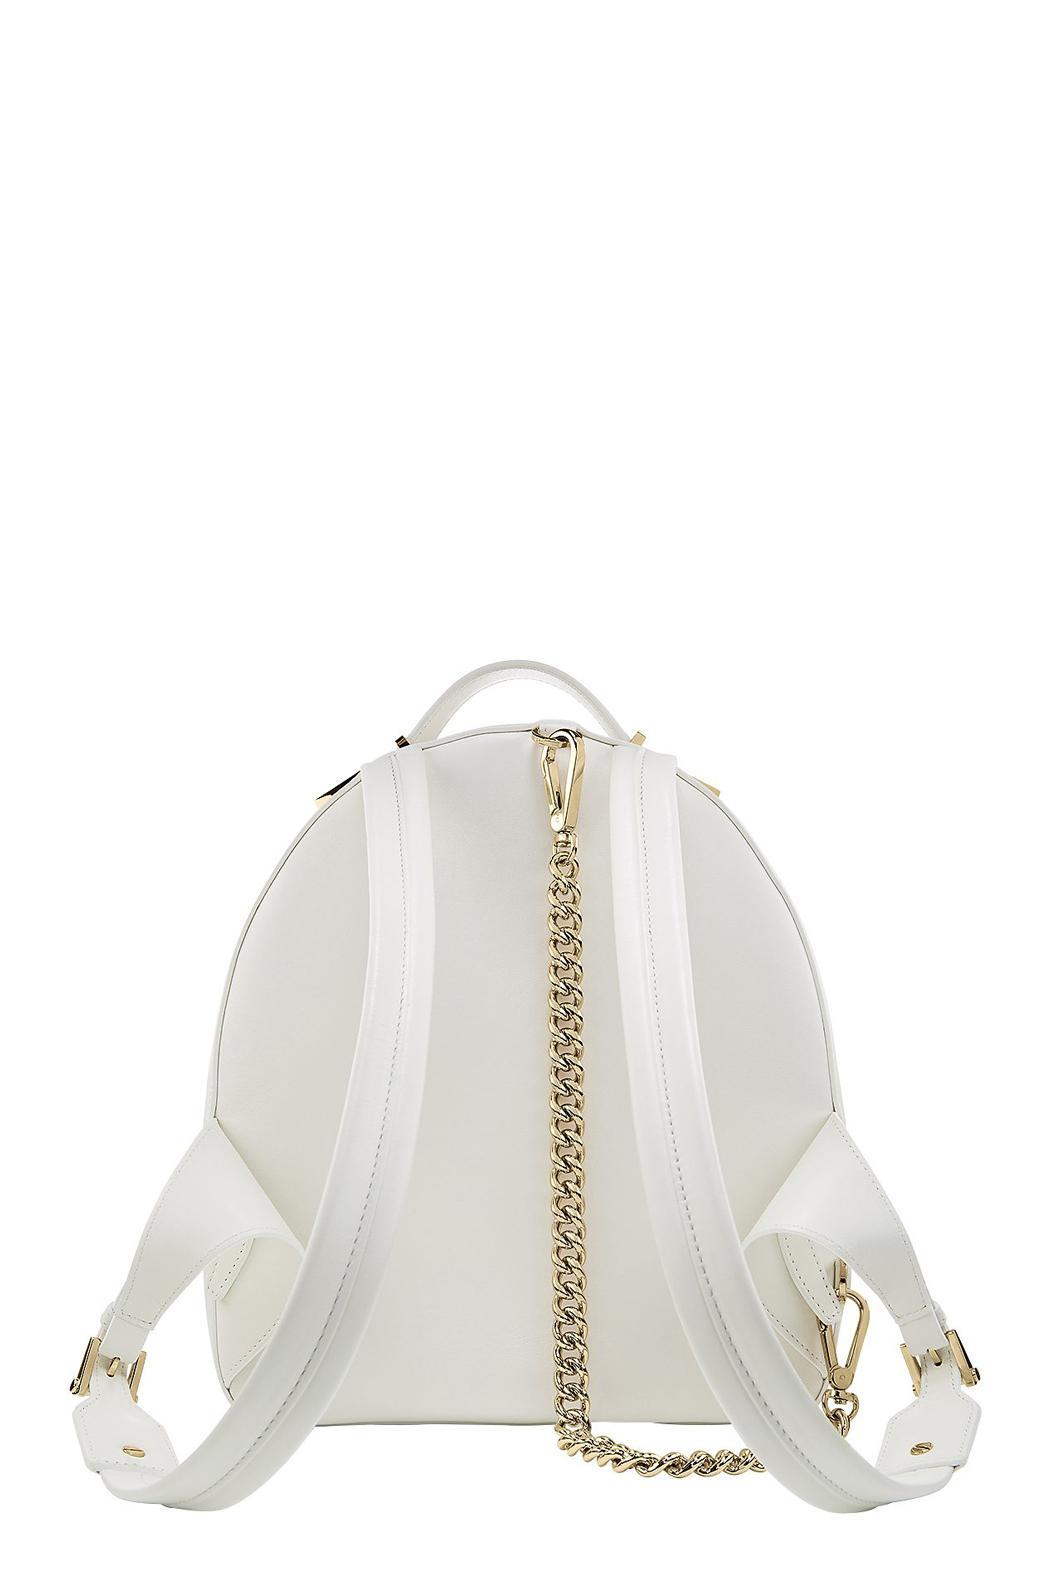 7bae23f0e0 Versace Palazzo Backpack from Atlantic City by Eleganza — Shoptiques